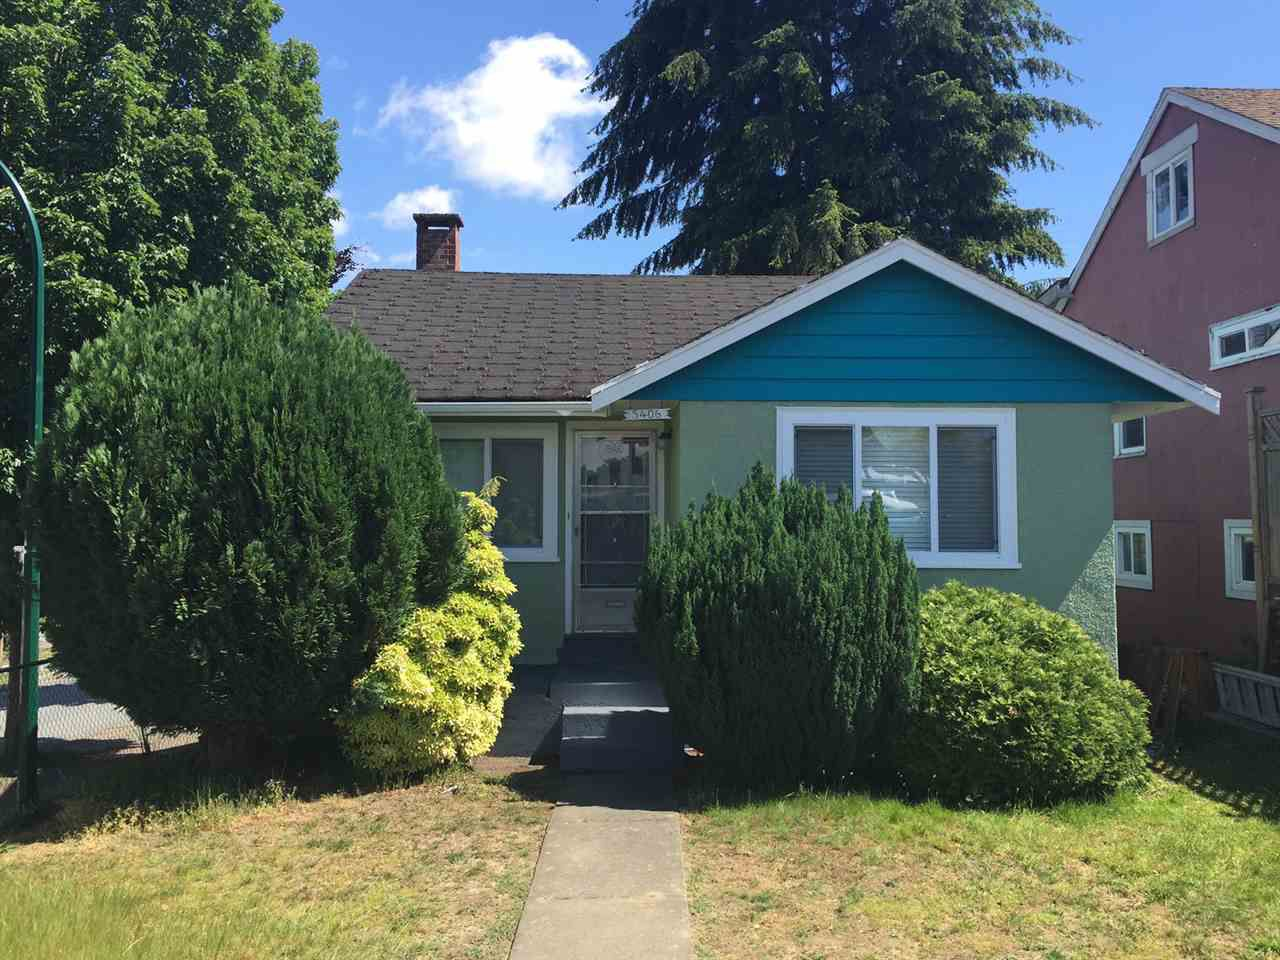 Main Photo: 5406 JOYCE Street in Vancouver: Collingwood VE House for sale (Vancouver East)  : MLS®# R2078037